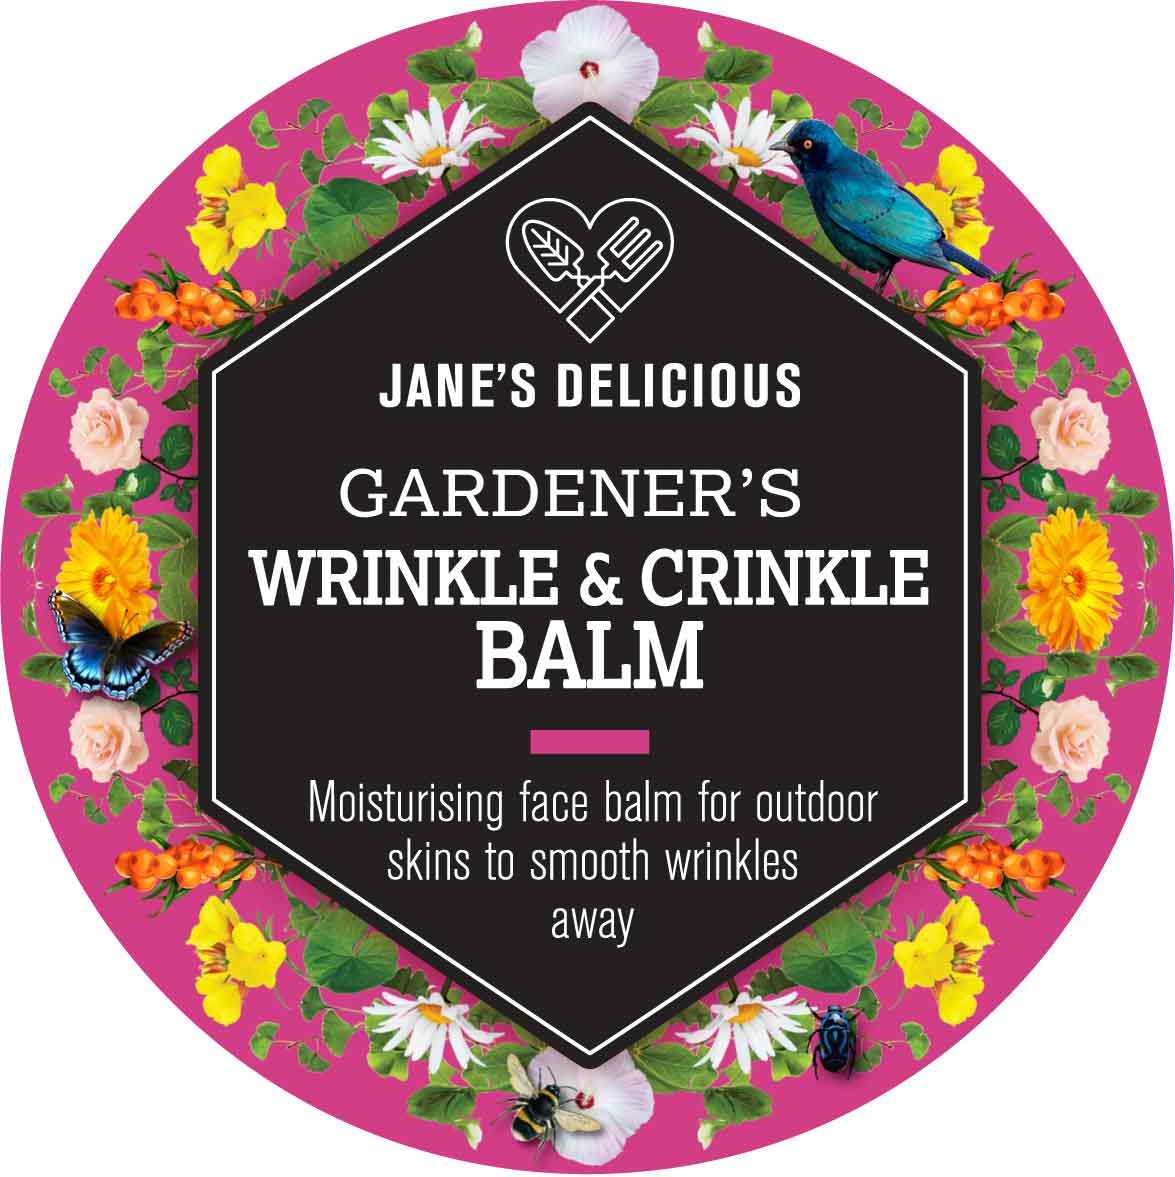 A deeply moisturising face balm for outdoor skin to smooth wrinkles away.